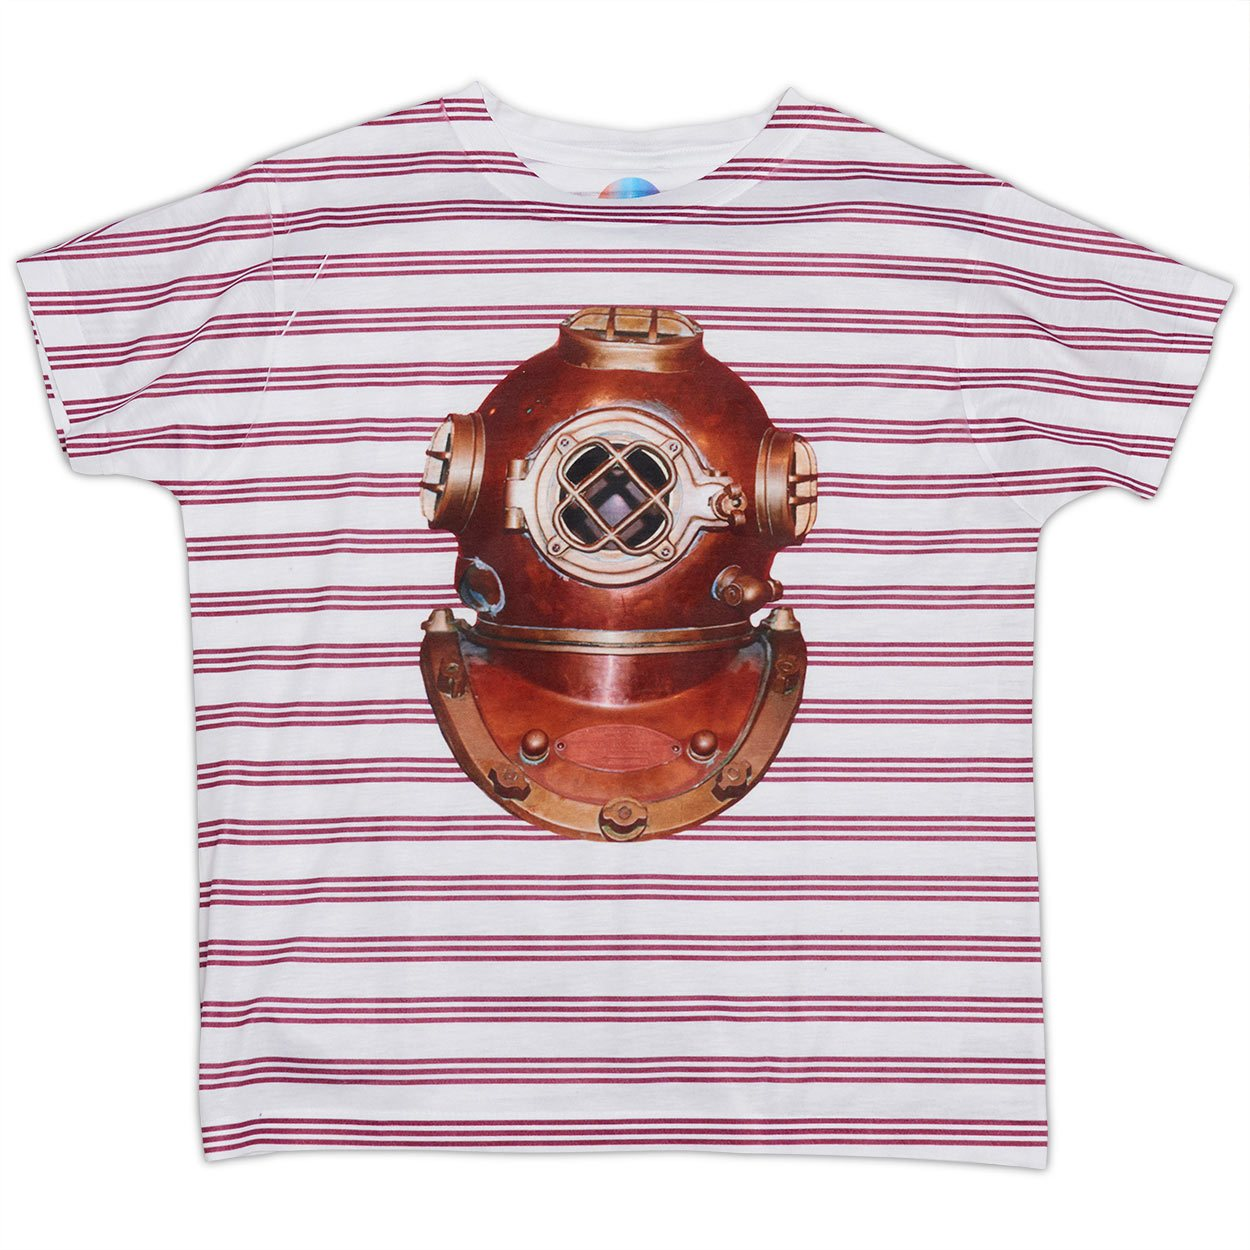 Boys Antique Diving Helmet Photo T-shirt